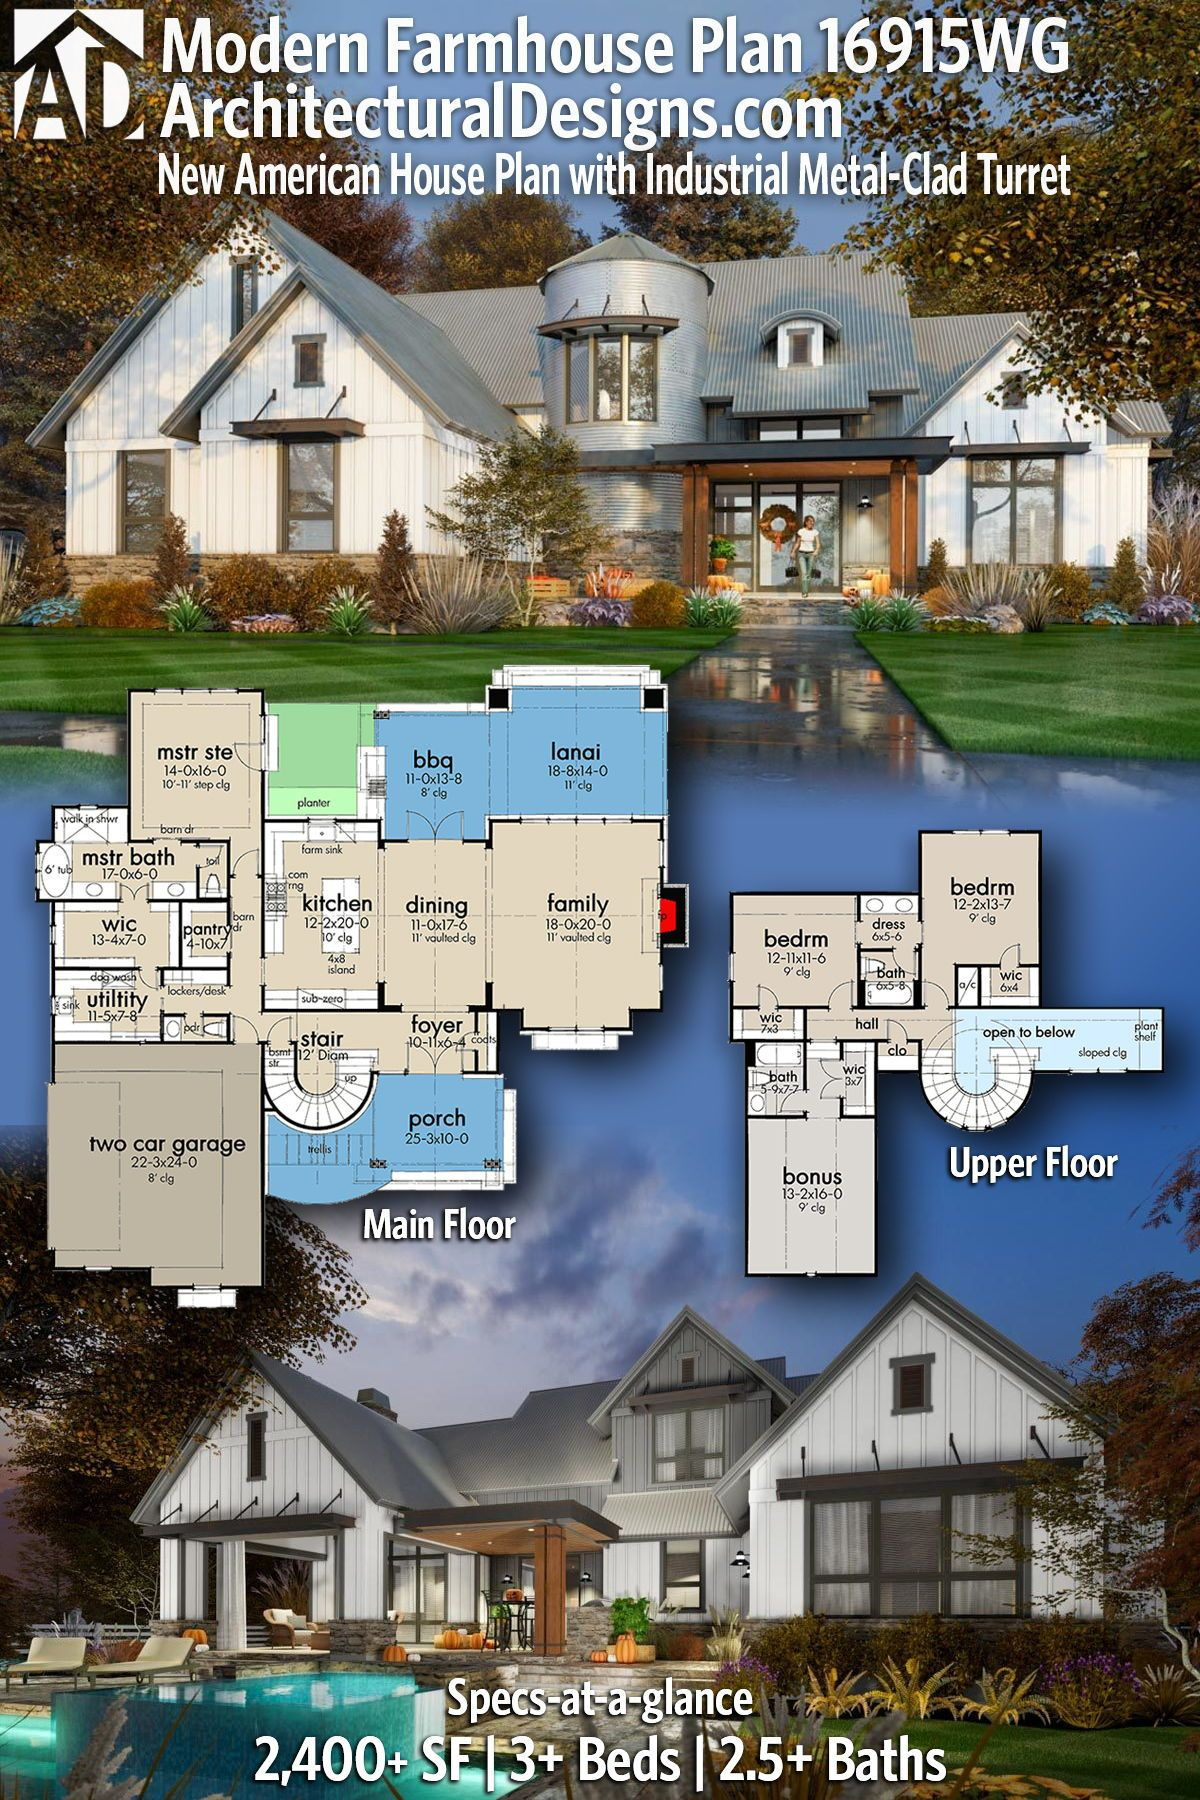 Plan 16915wg New American House Plan With Industrial Metal Clad Turret Farmhouse Floor Plans American House Plans Modern Farmhouse Plans